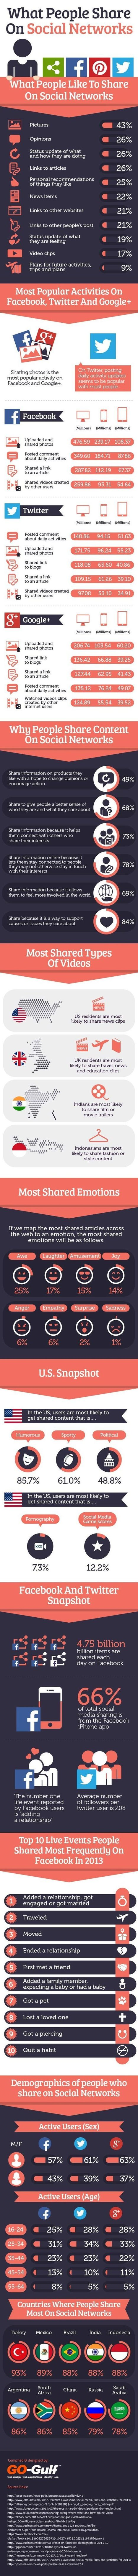 What People Share On Social Networks | Social Media | Scoop.it